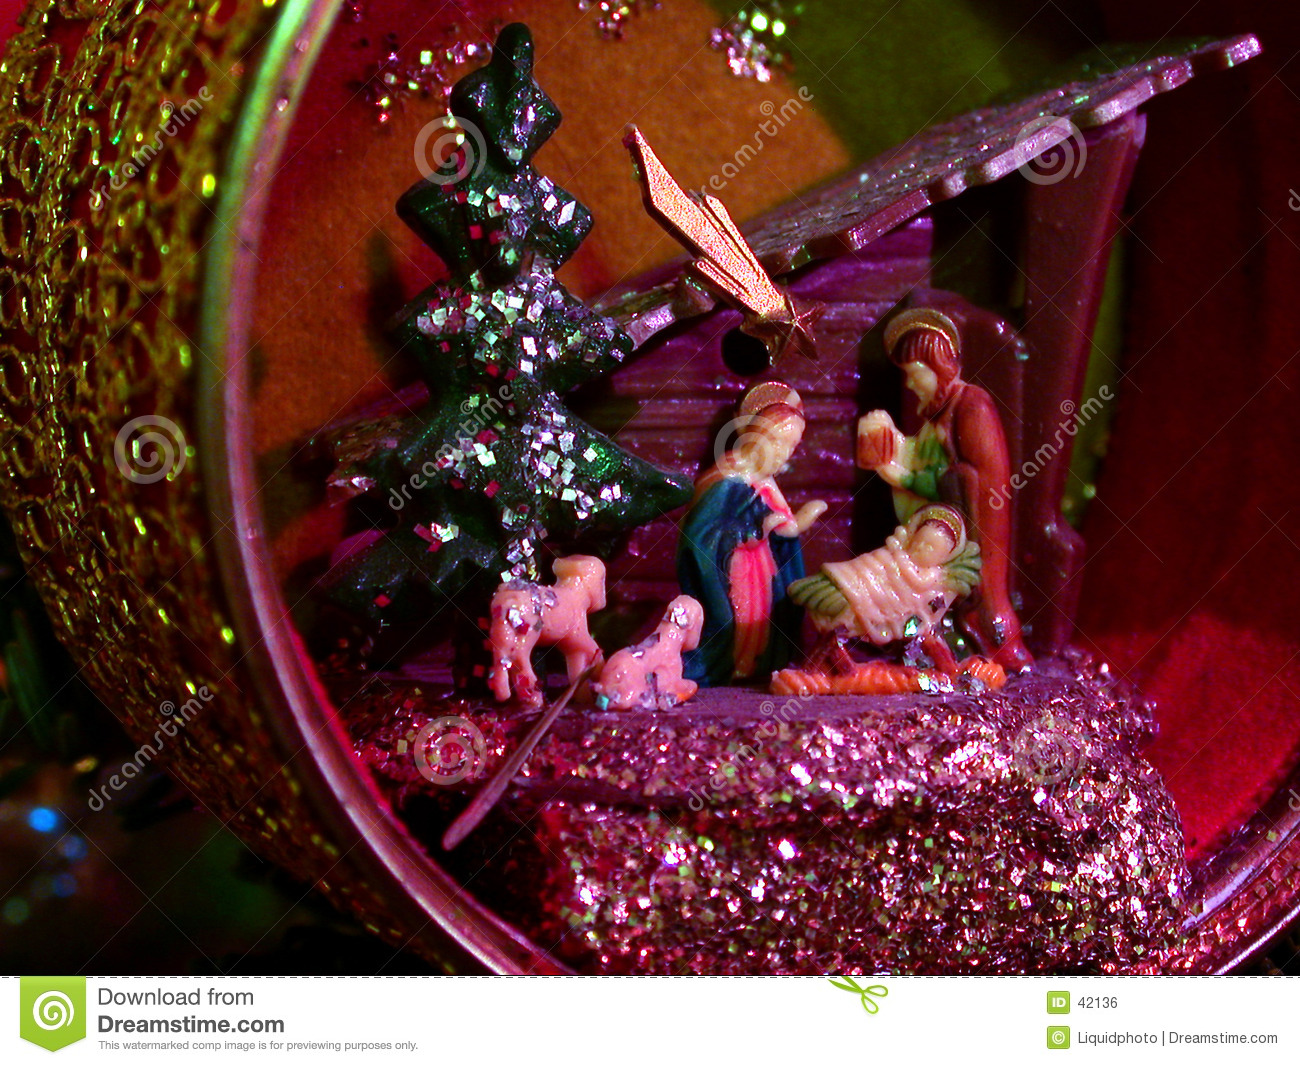 Christmas nativity ornament scene